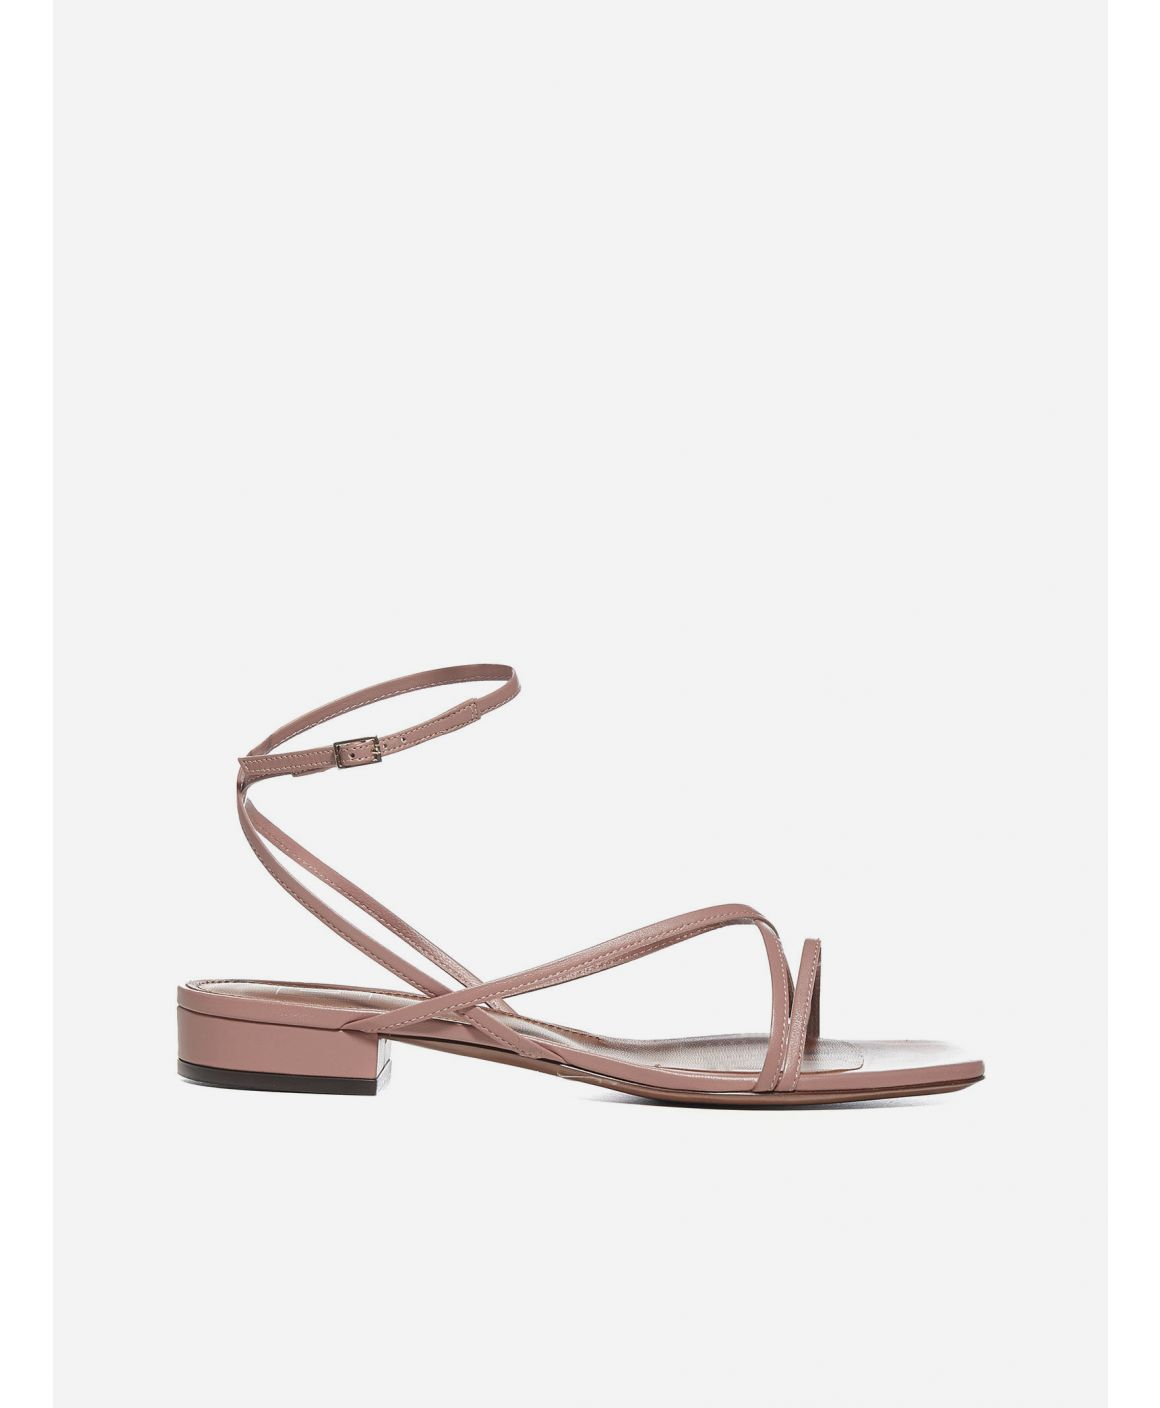 Emma leather flat sandals